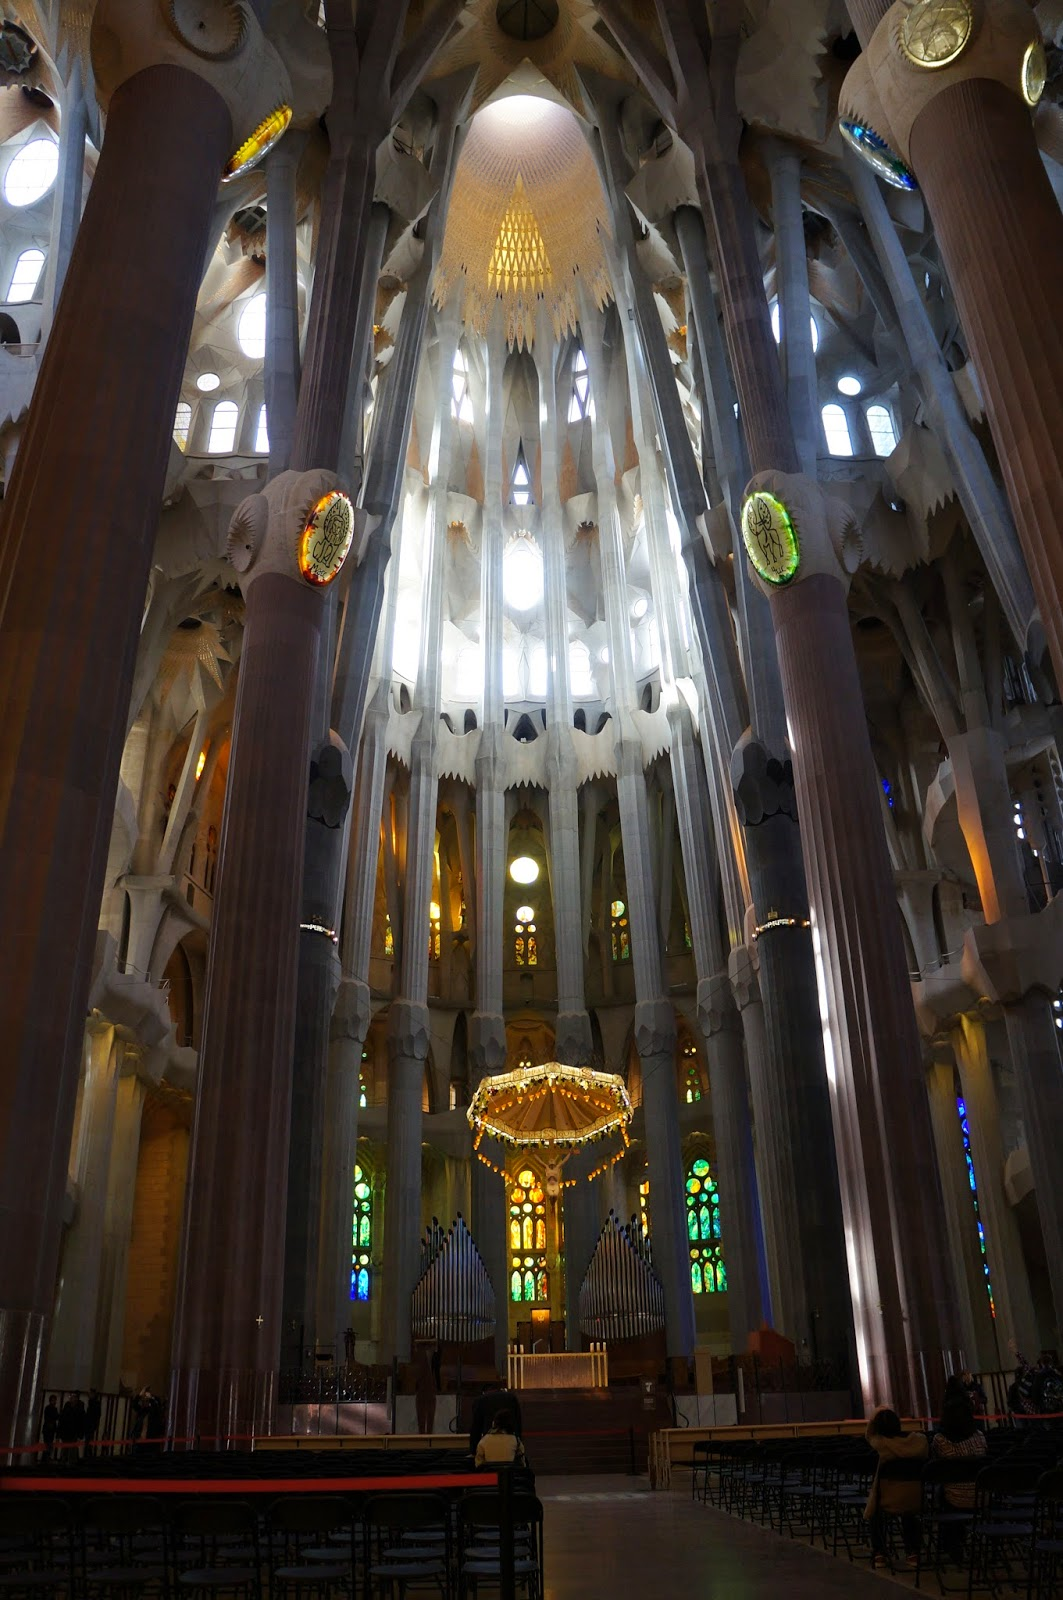 Inside the Sagrada Familia in Barcelona Spain.